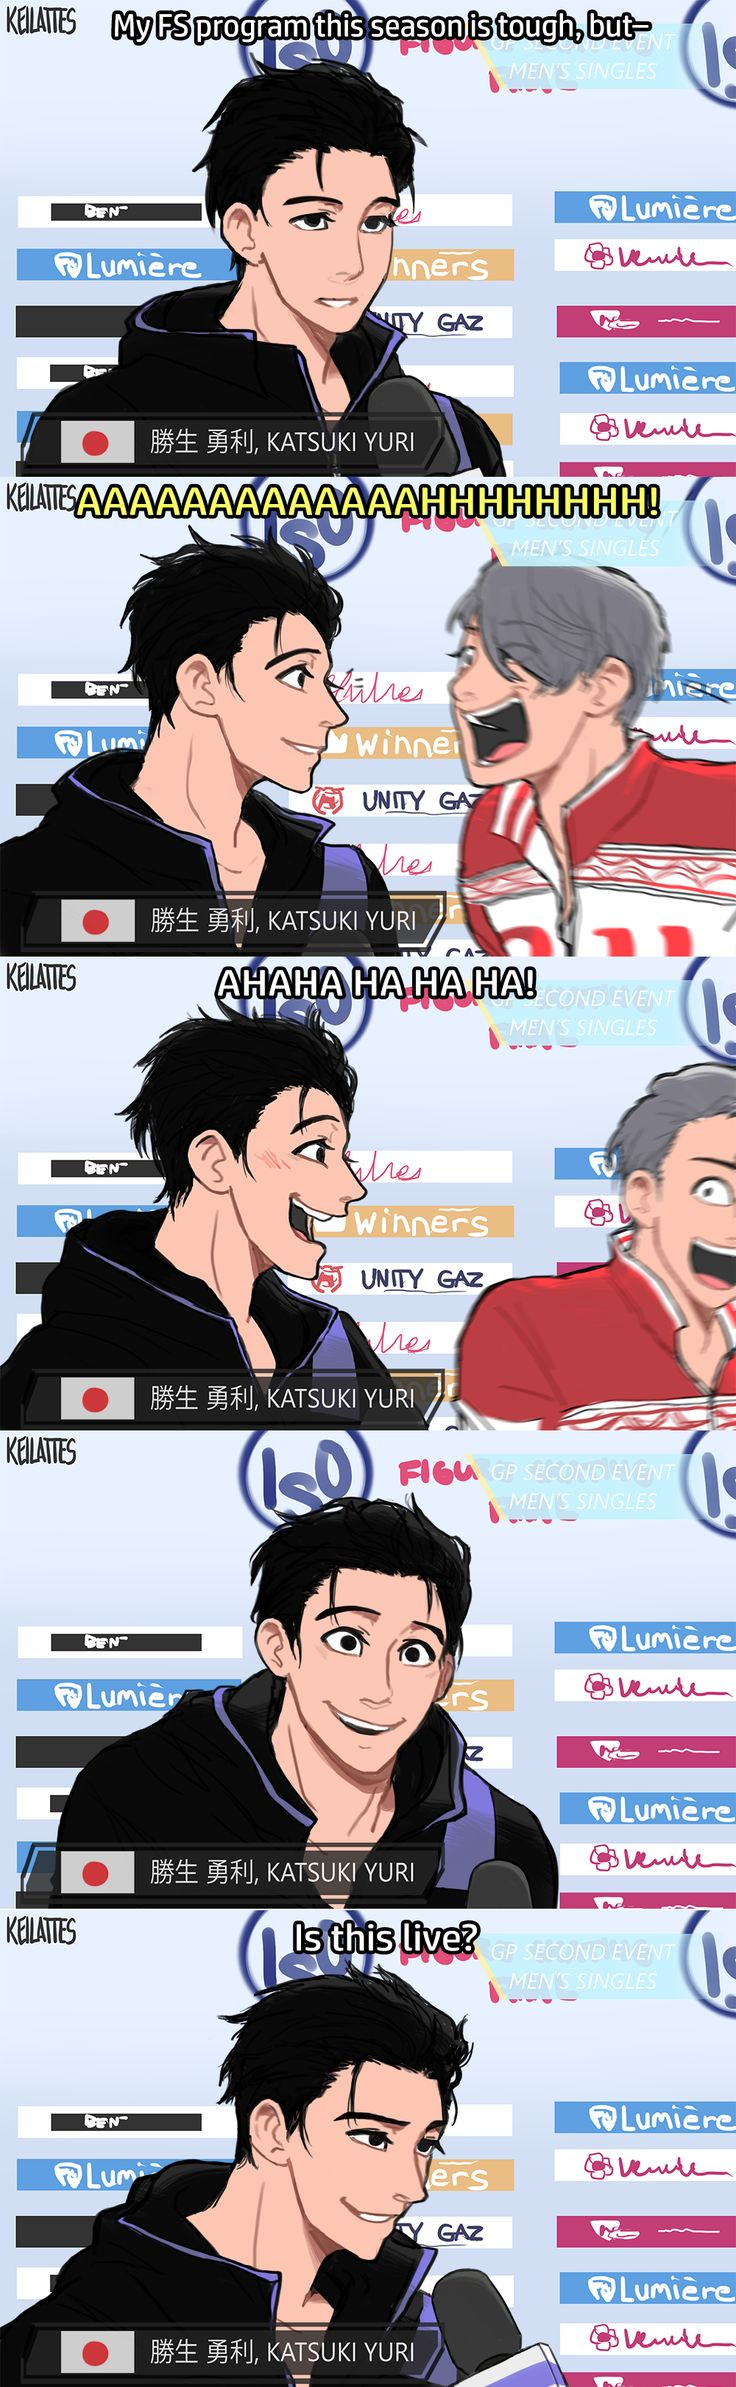 http://keilattes.tumblr.com/post/155779523098/viktor-nikiforov-and-yuri-katsuki-competing